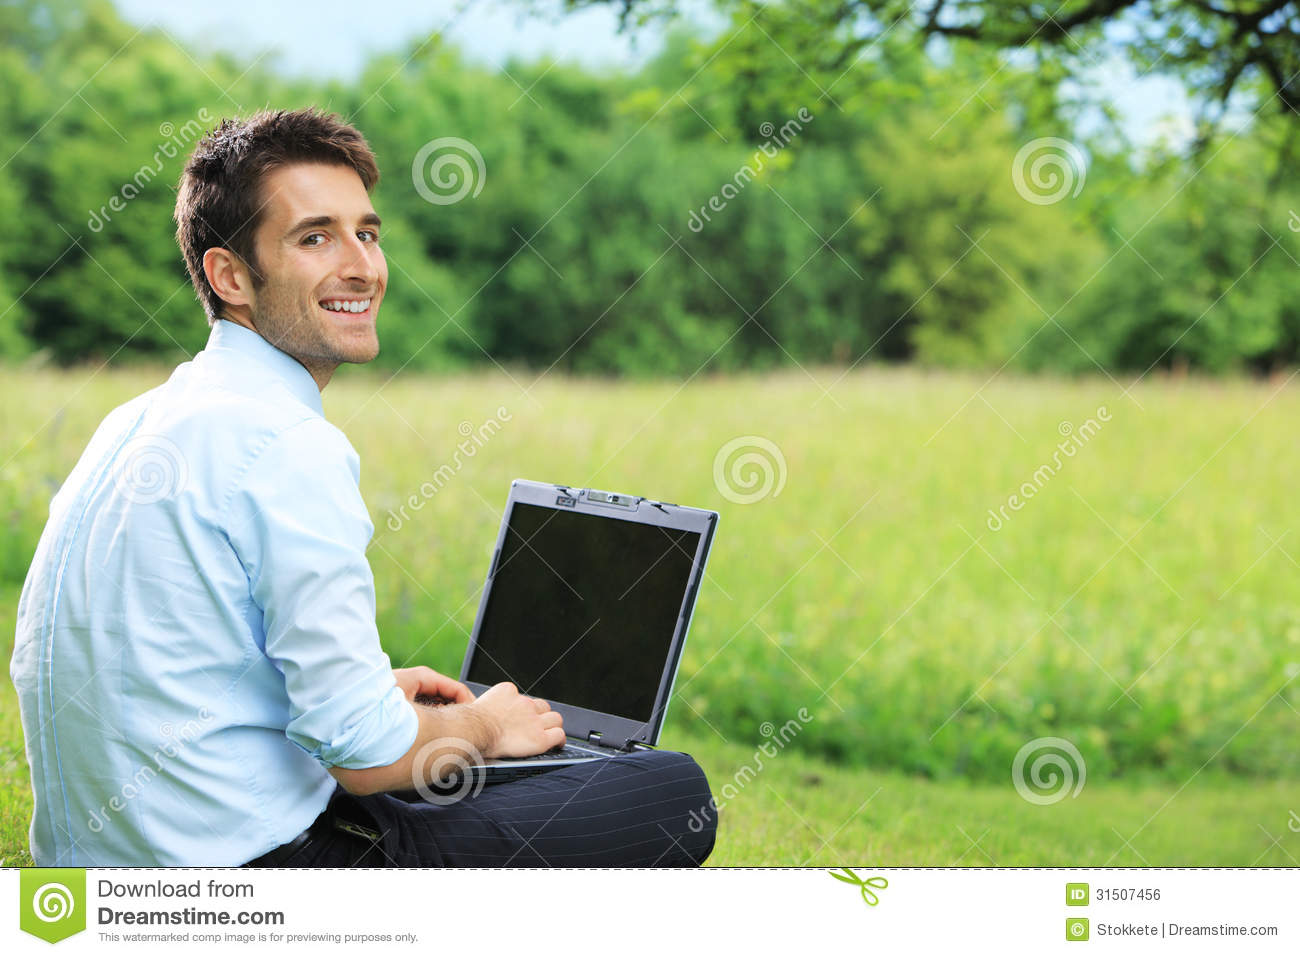 Working Outdoors Royalty Free Stock Image - Image: 31507456